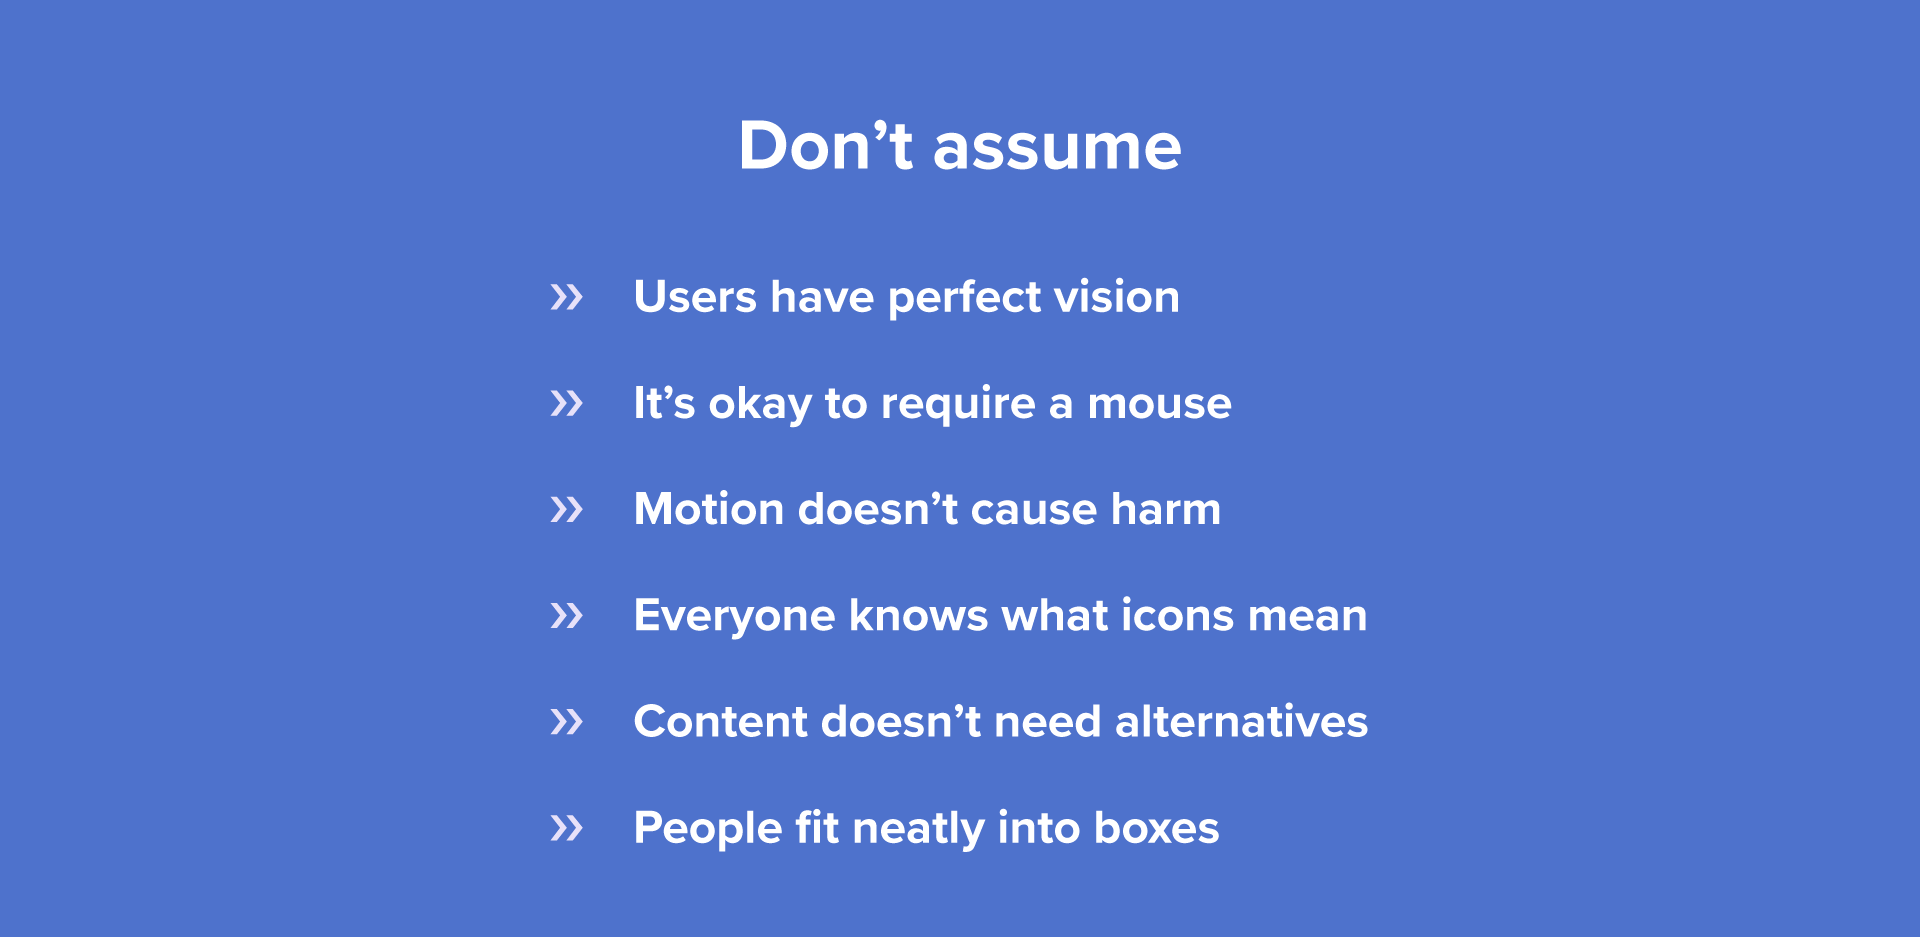 A list of assumptions that should not be made about your users.